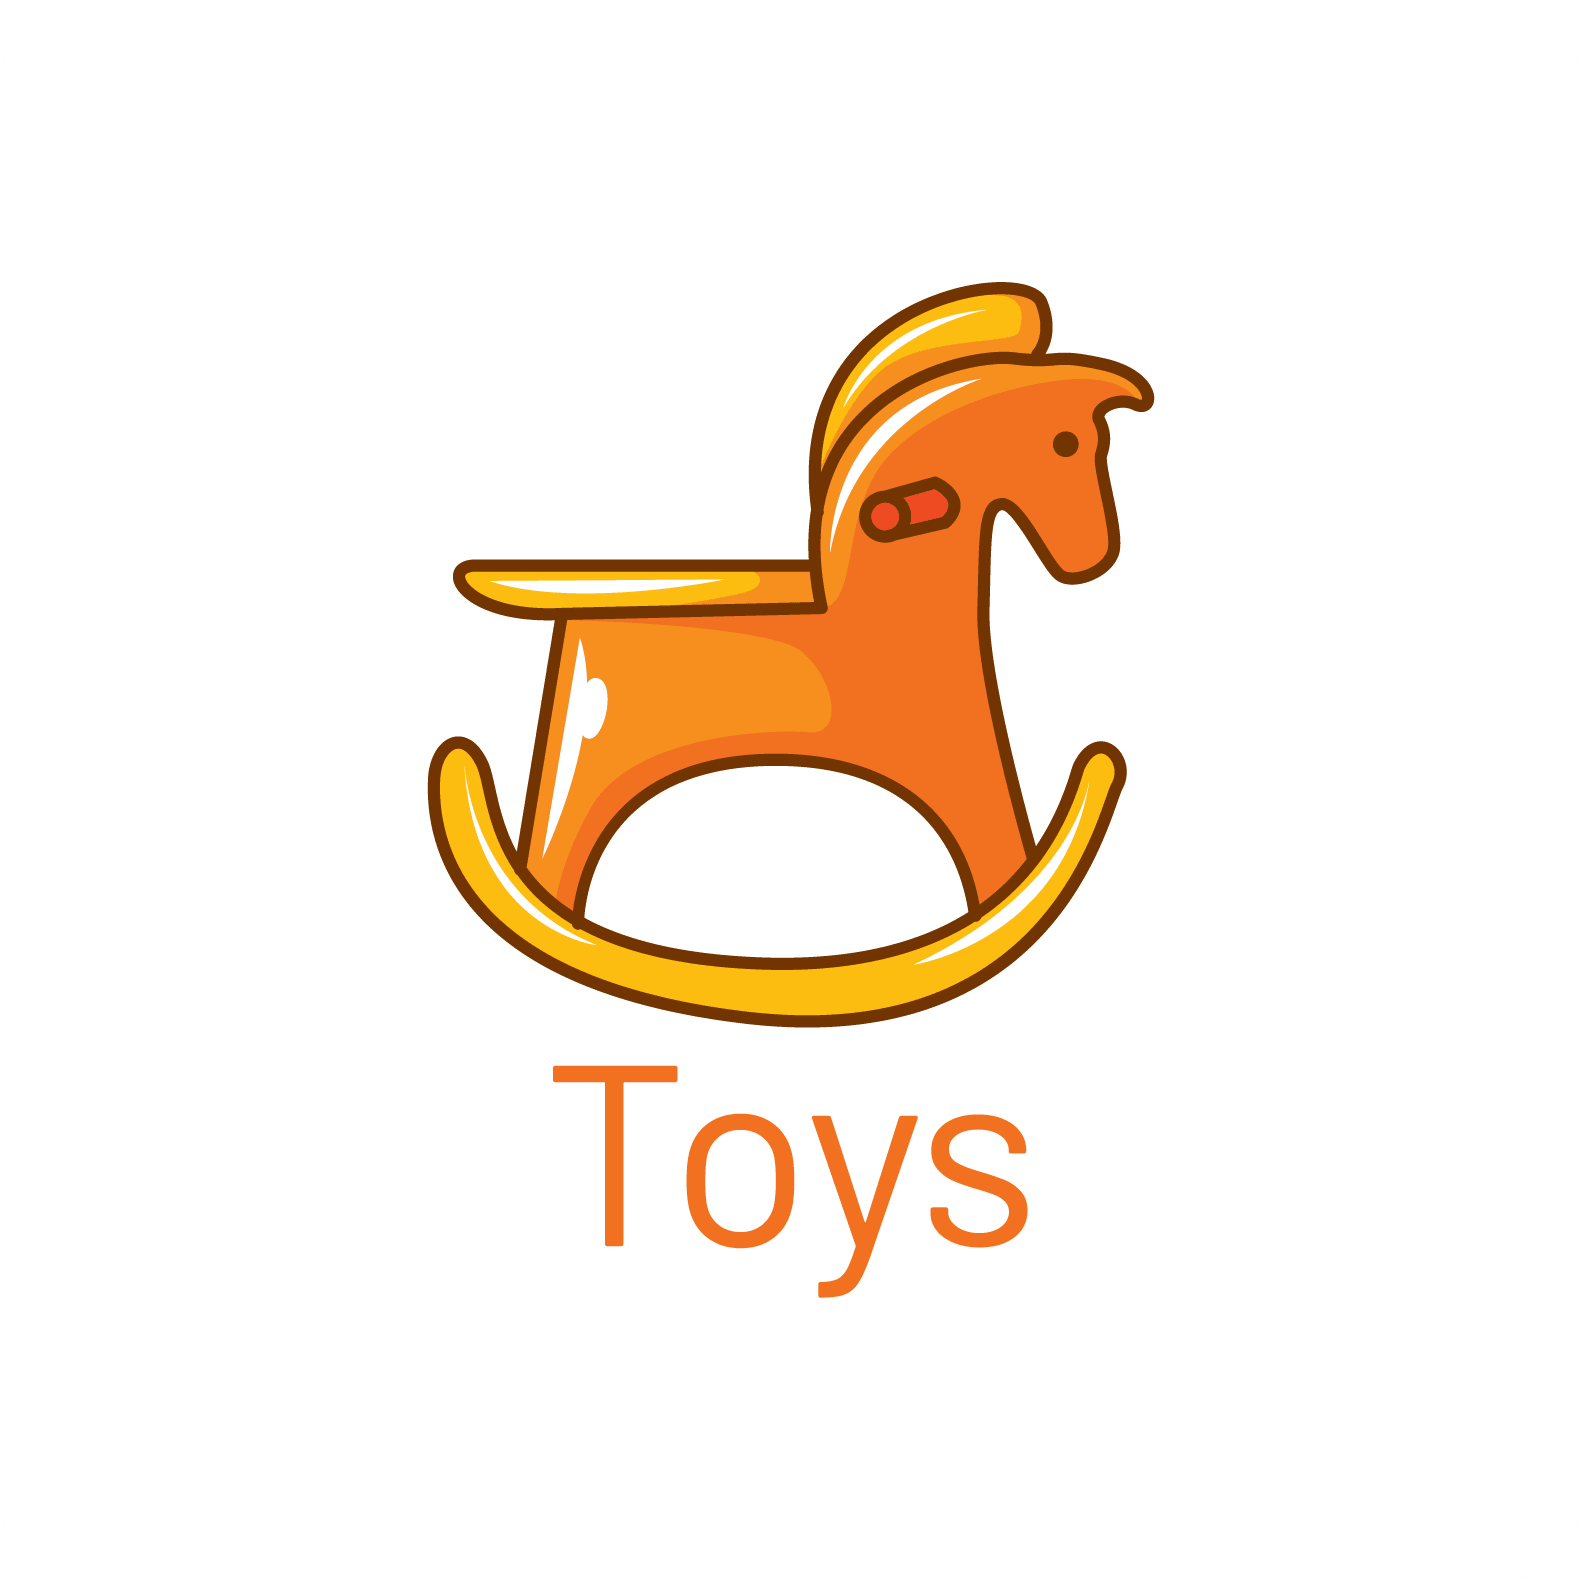 Image for toys category